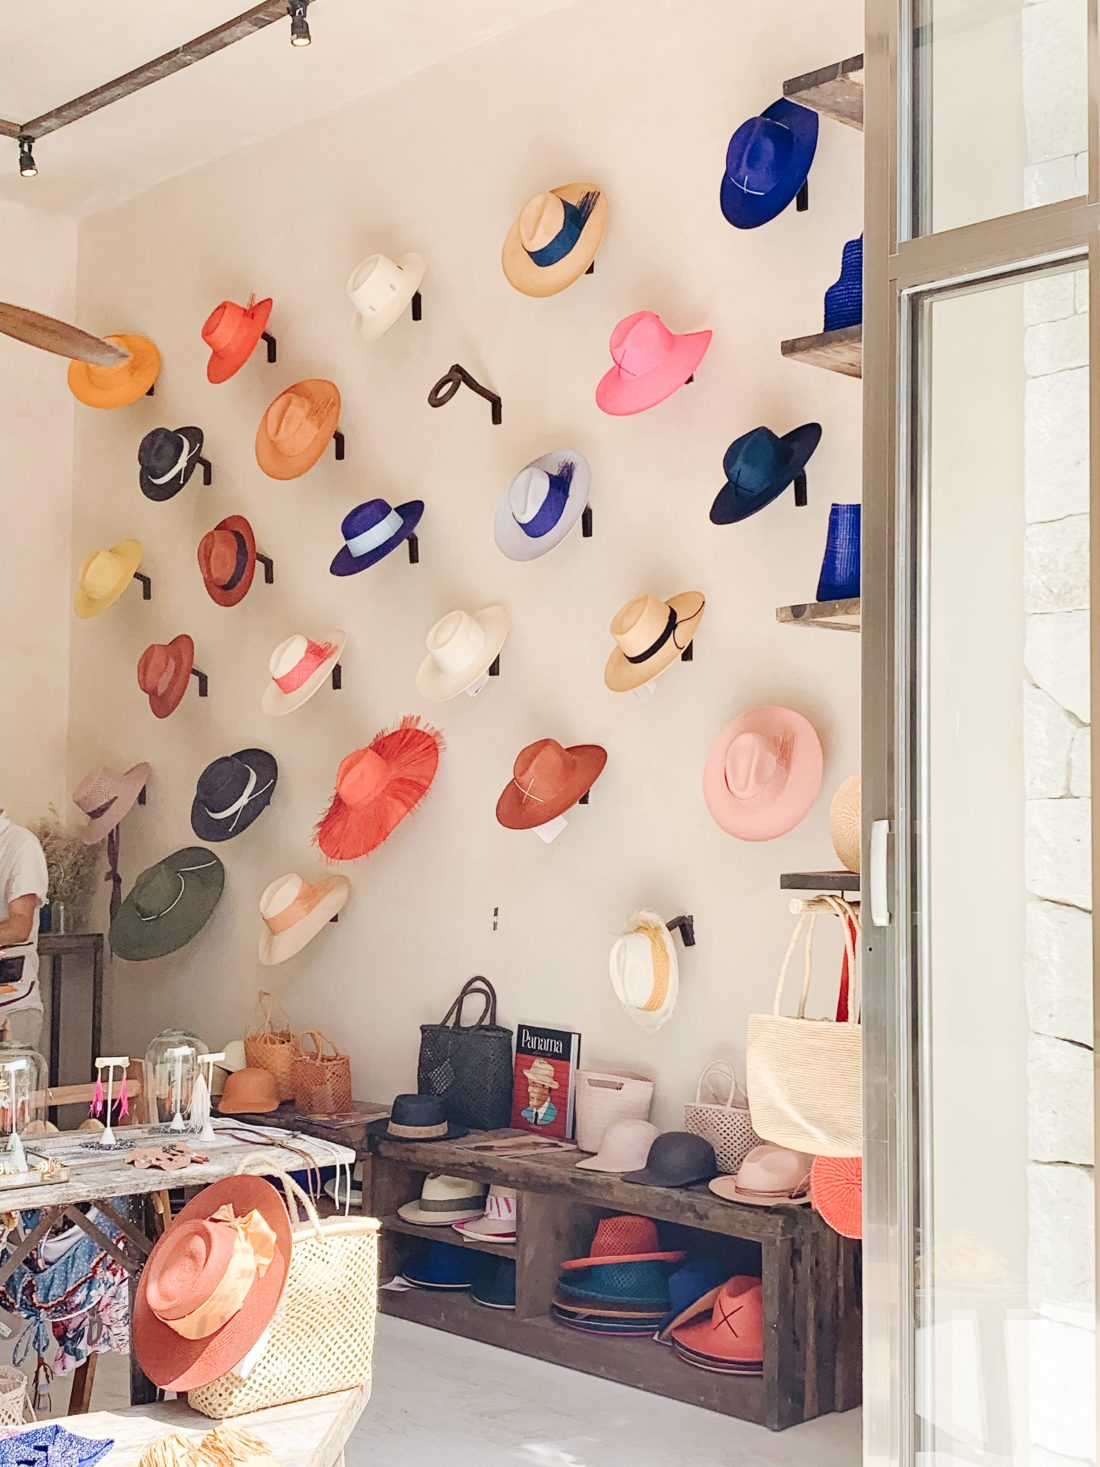 A Tulum boutique filled with colorful hats